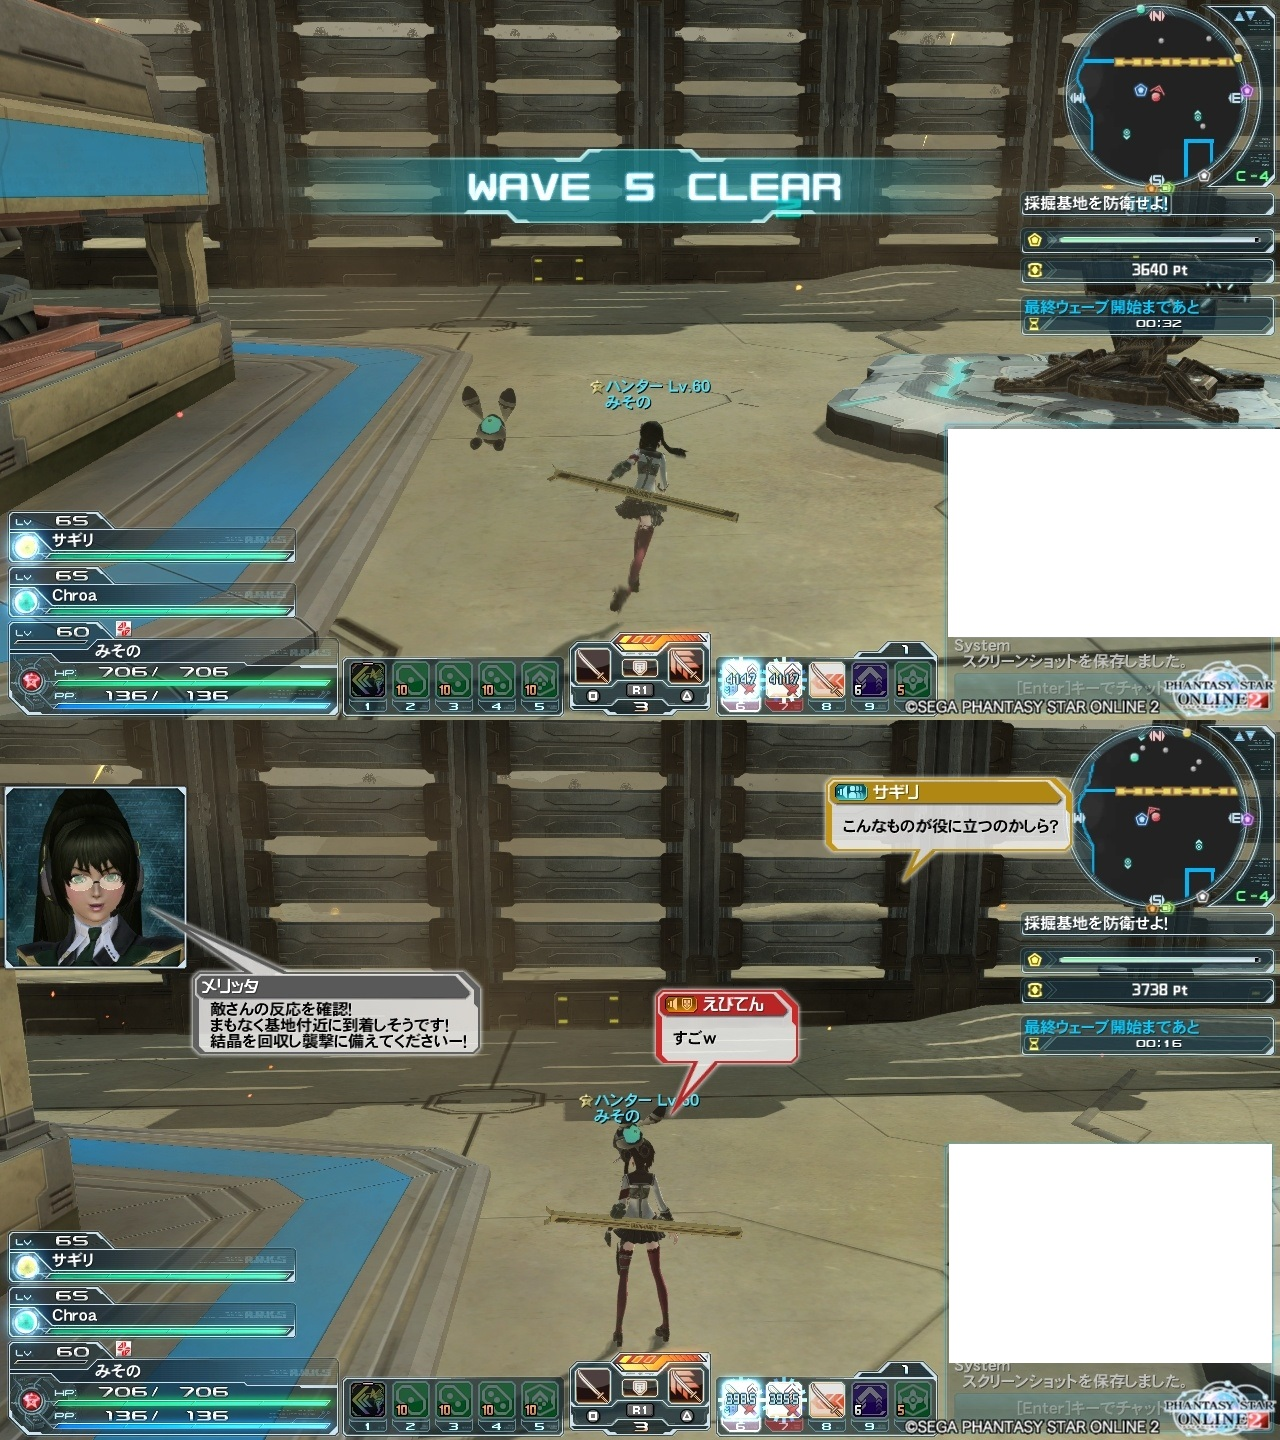 WAVE 5 CLEAR